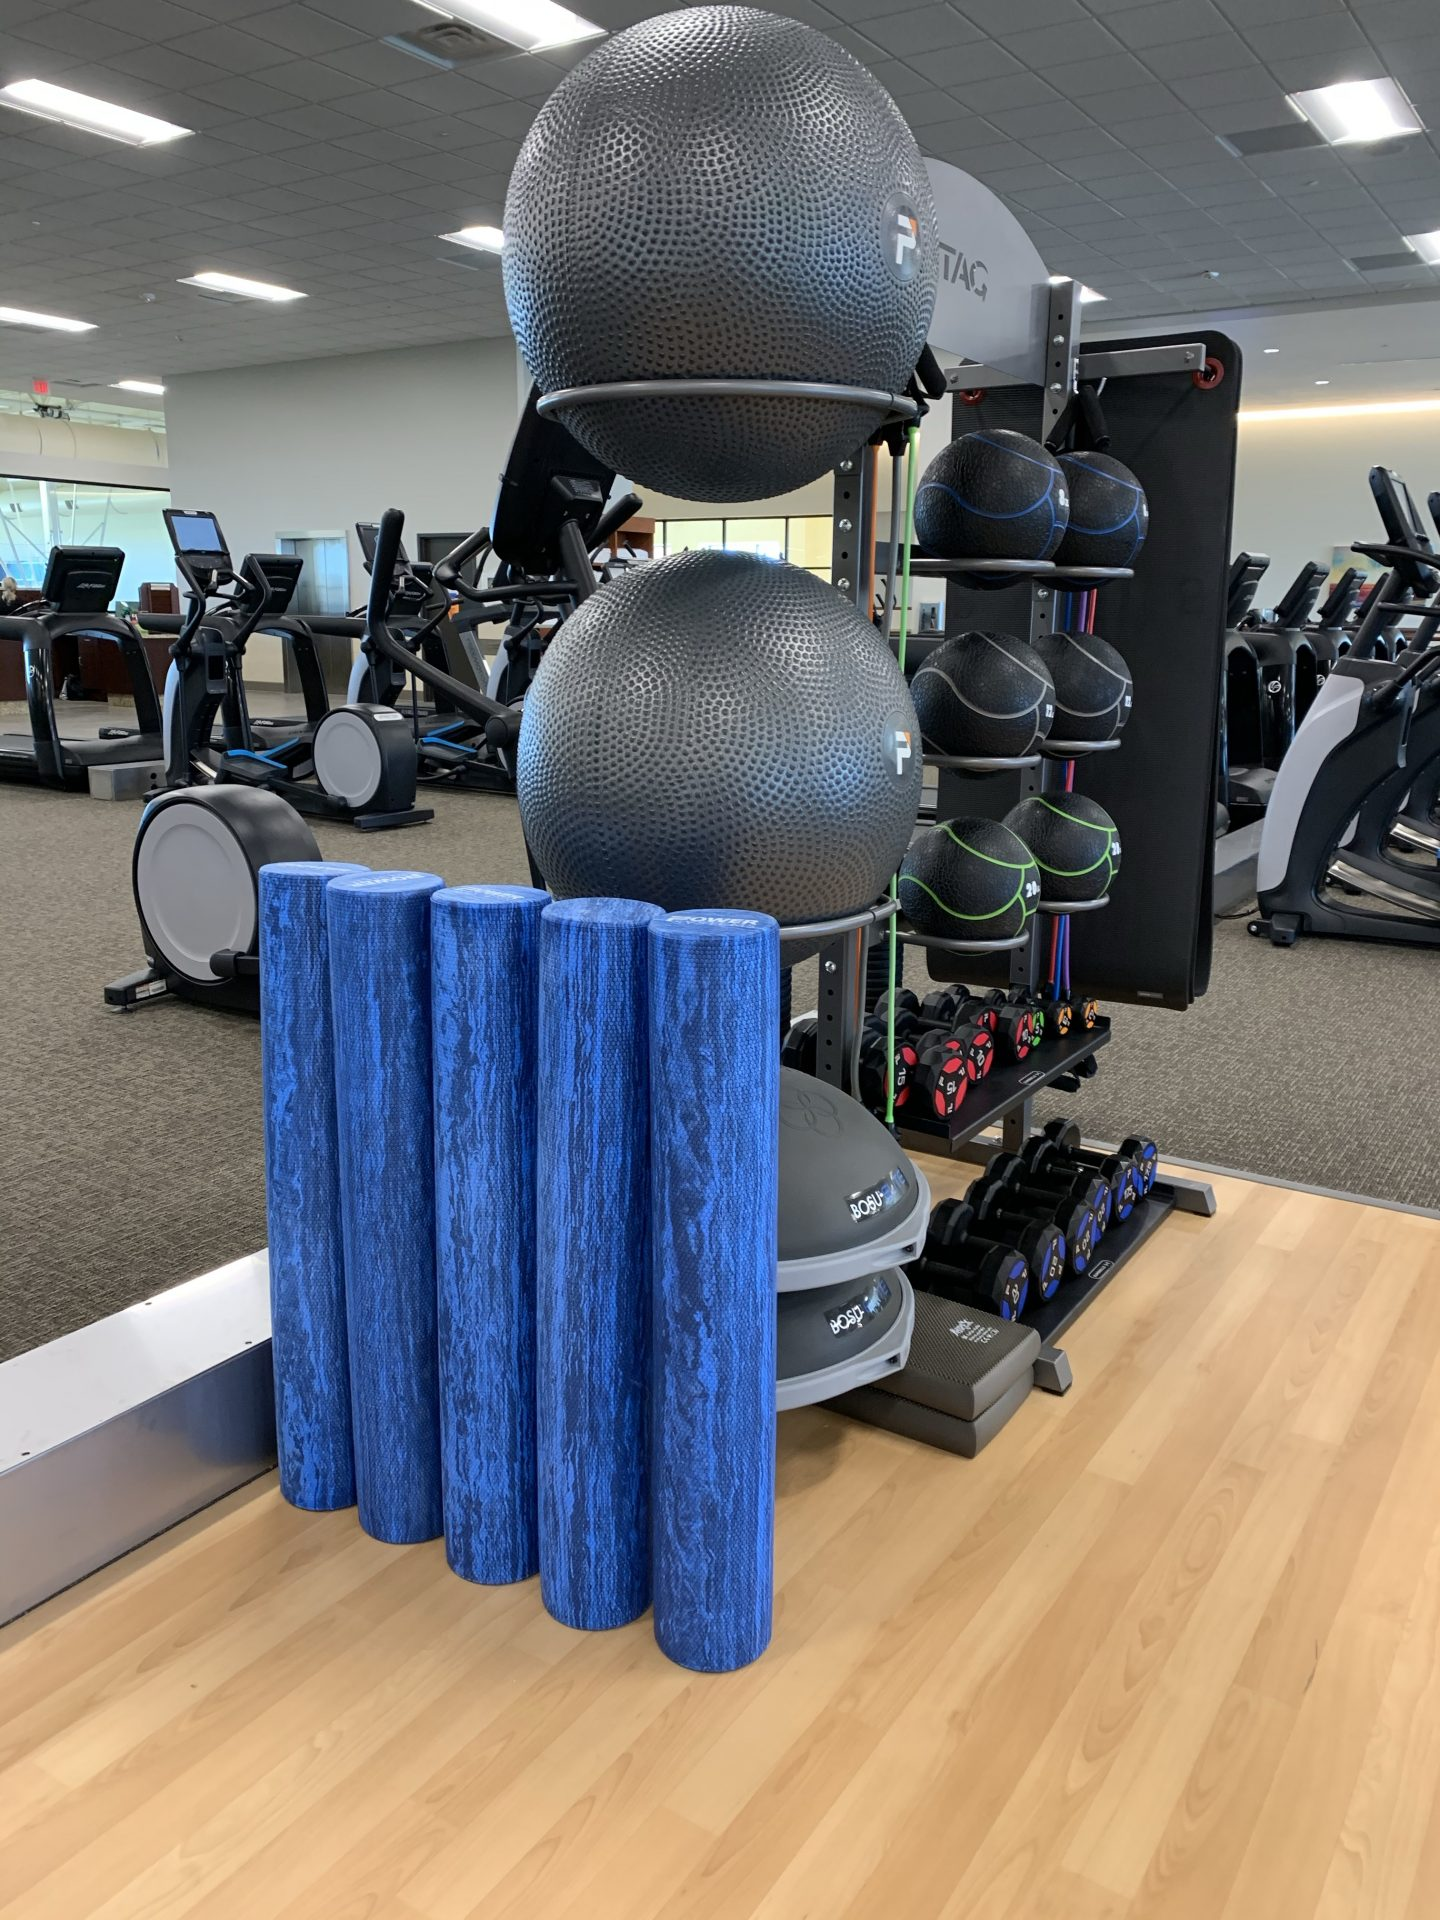 VillaSport Athletic Club, Spa & Gym Opens in Katy, TX